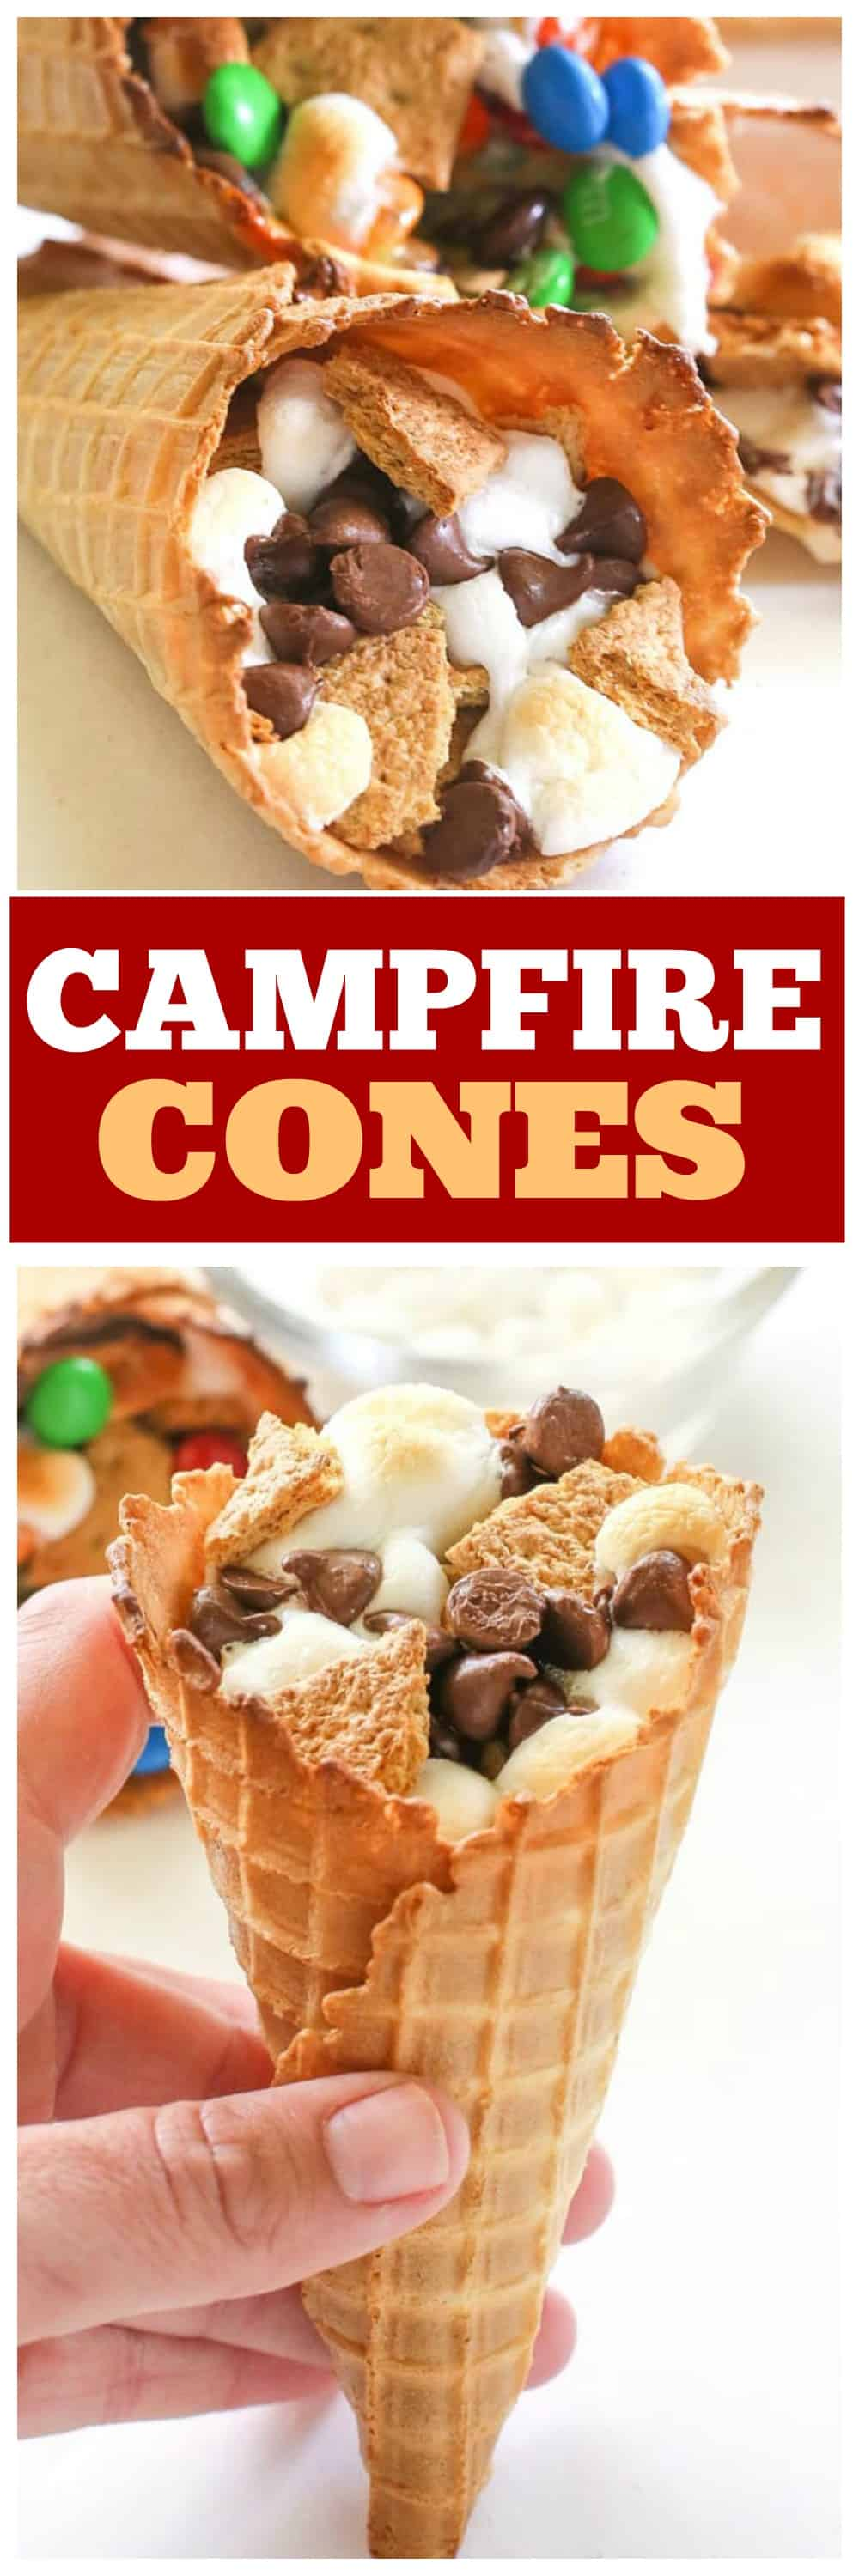 Tolle Desserts Campfire Cones Great For Camping The Girl Who Ate Everything